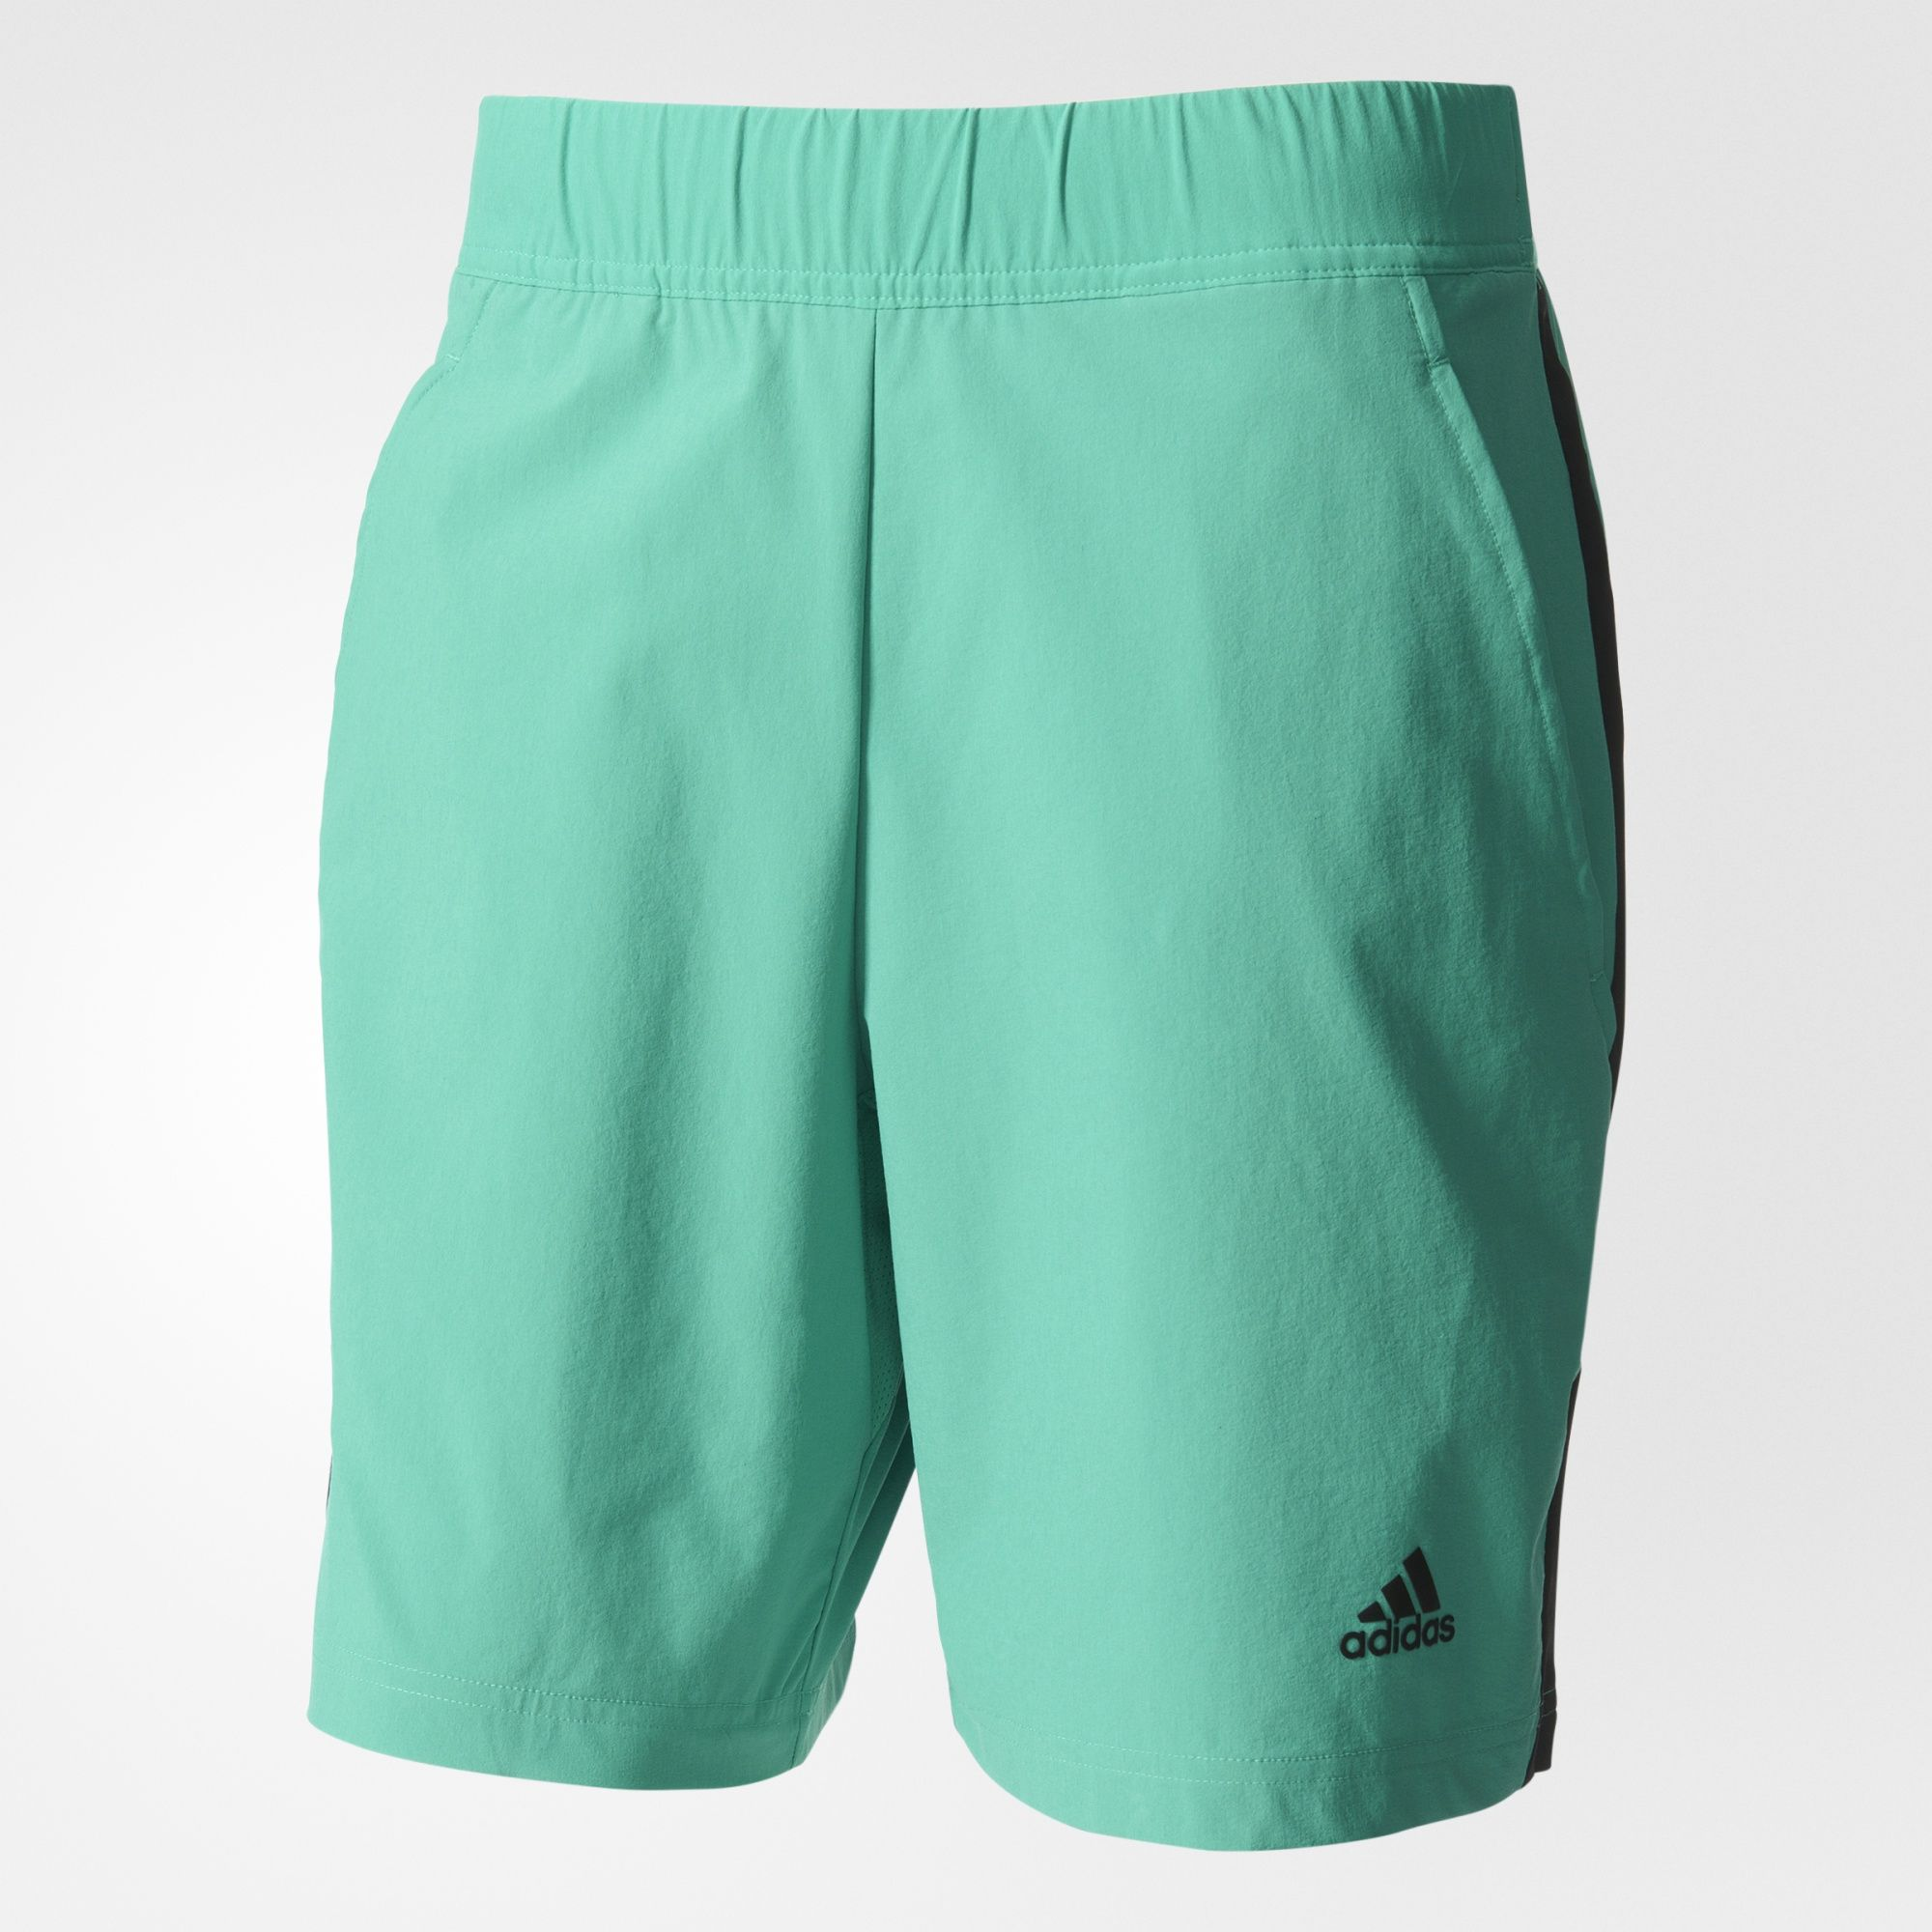 5dde5e8f026 Adidas Men's Roland Garros Tennis Shorts (Core Green/Black) $55.00